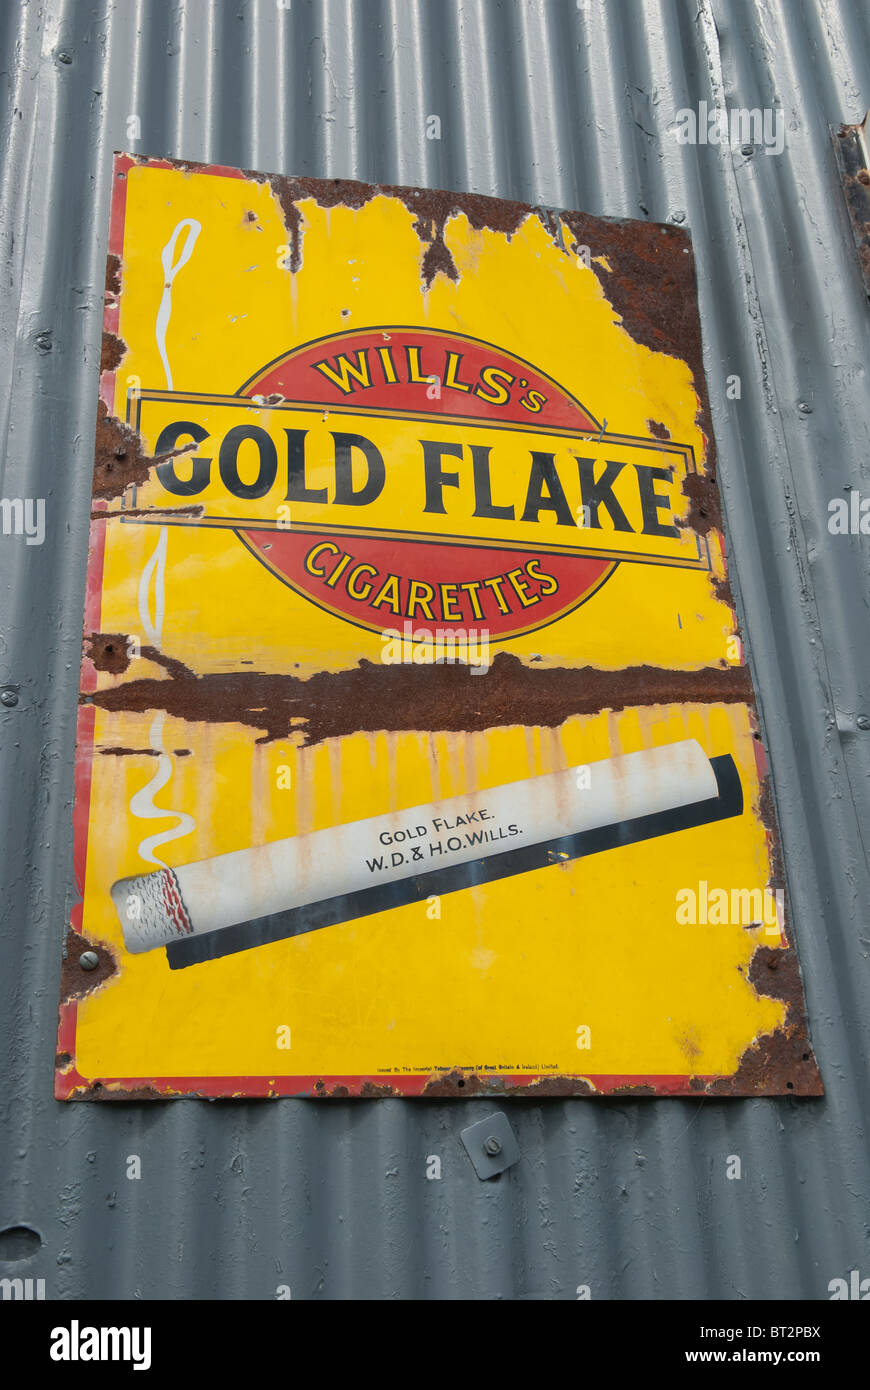 Wills Gold Flake cigarettes sign on derelict building - Stock Image